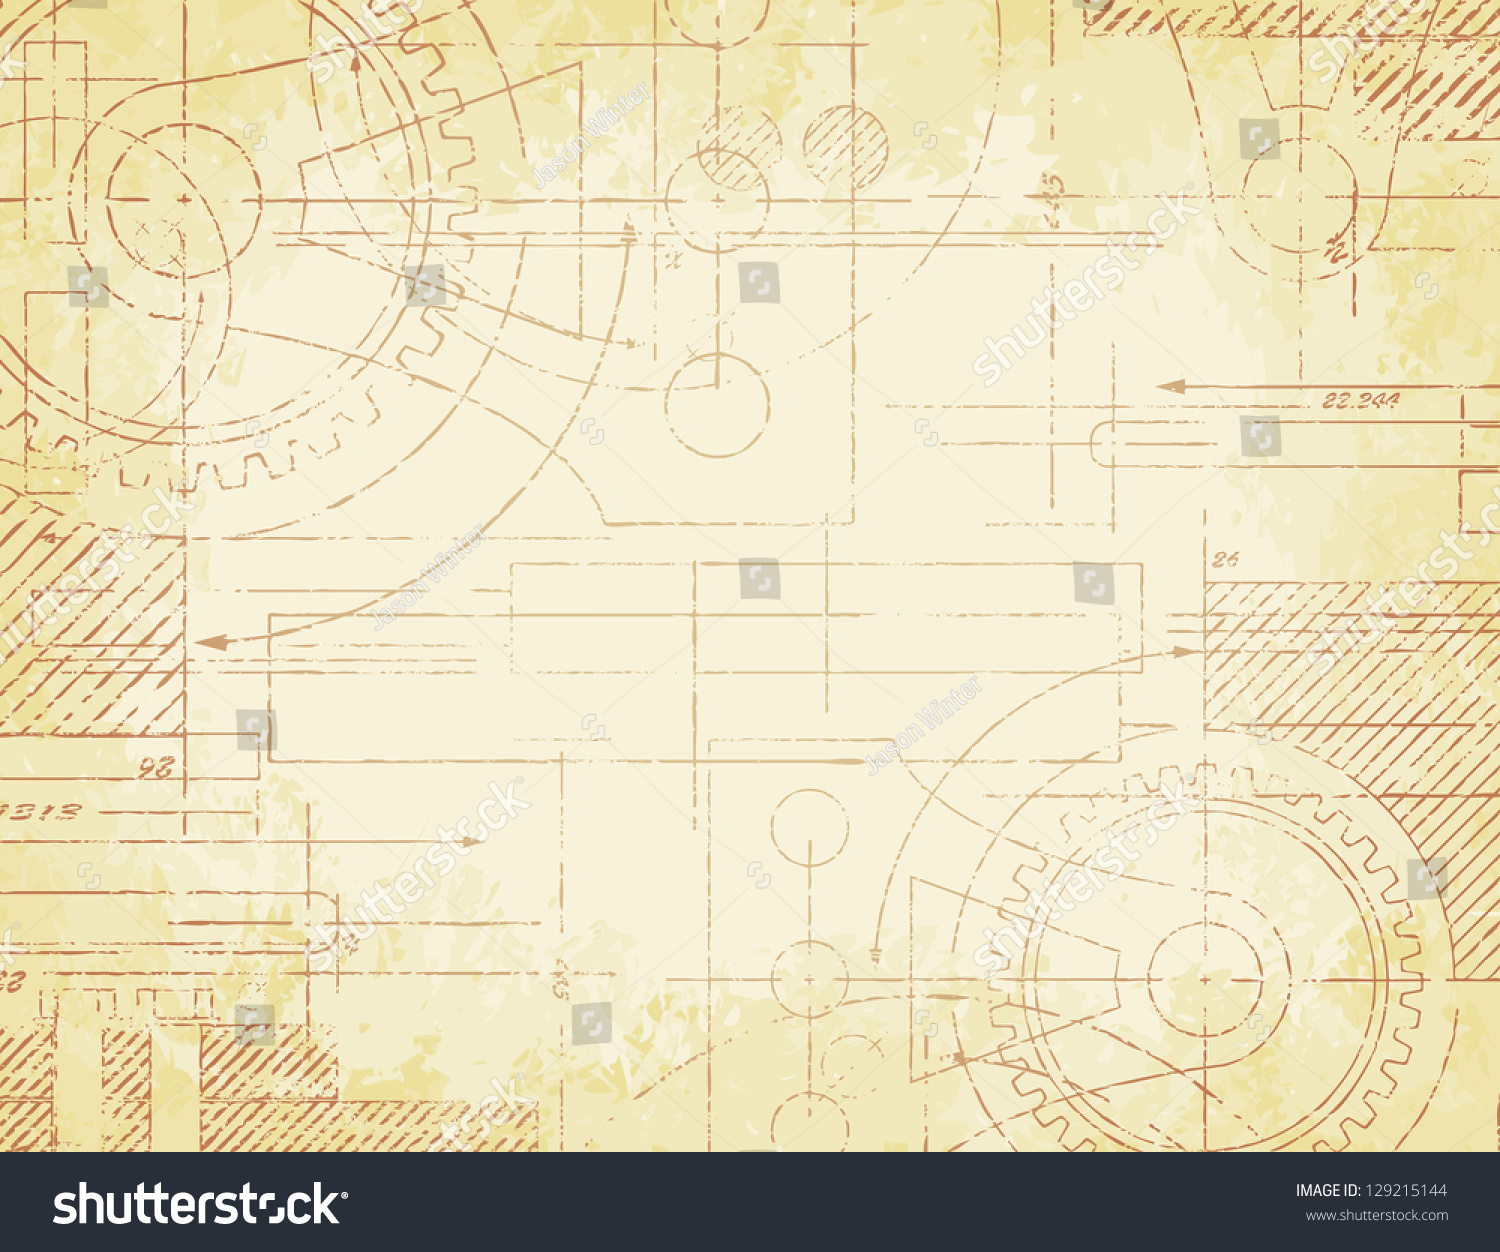 Royalty free grungy old technical blueprint 129215144 stock photo grungy old technical blueprint illustration on faded paper background 129215144 malvernweather Gallery